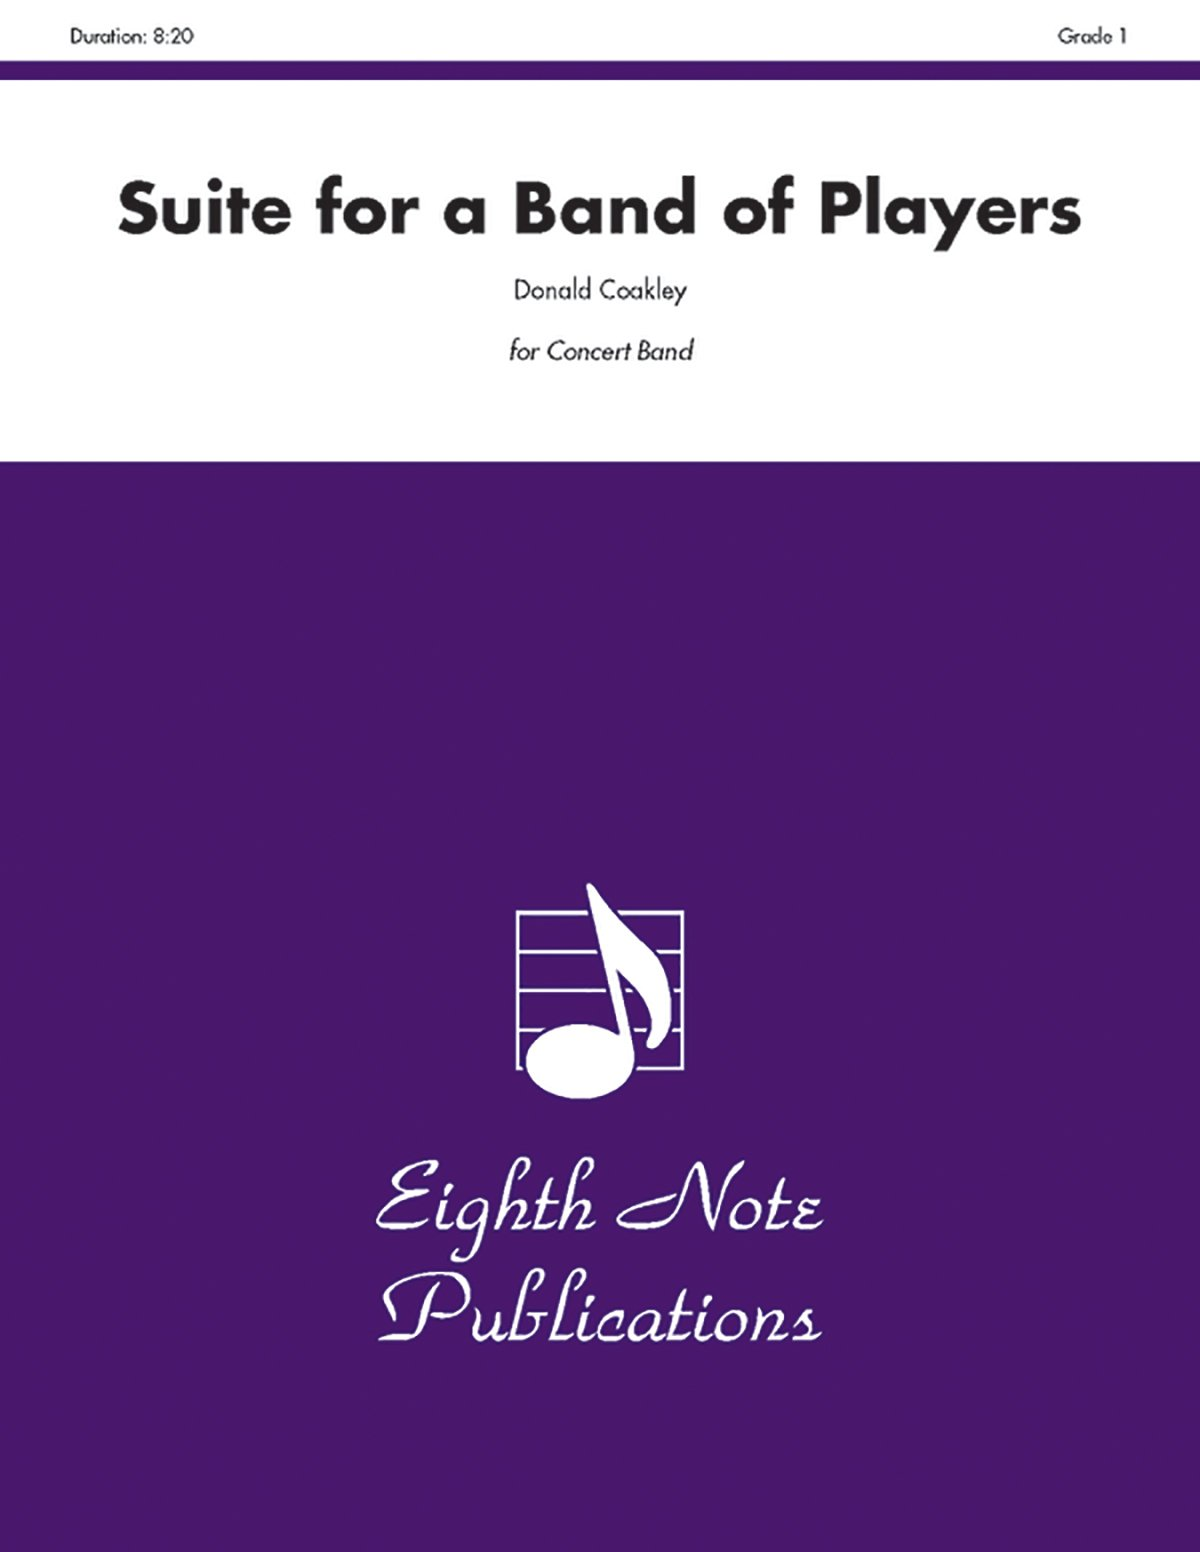 Download Suite for a Band of Players: Conductor Score & Parts (Eighth Note Publications) pdf